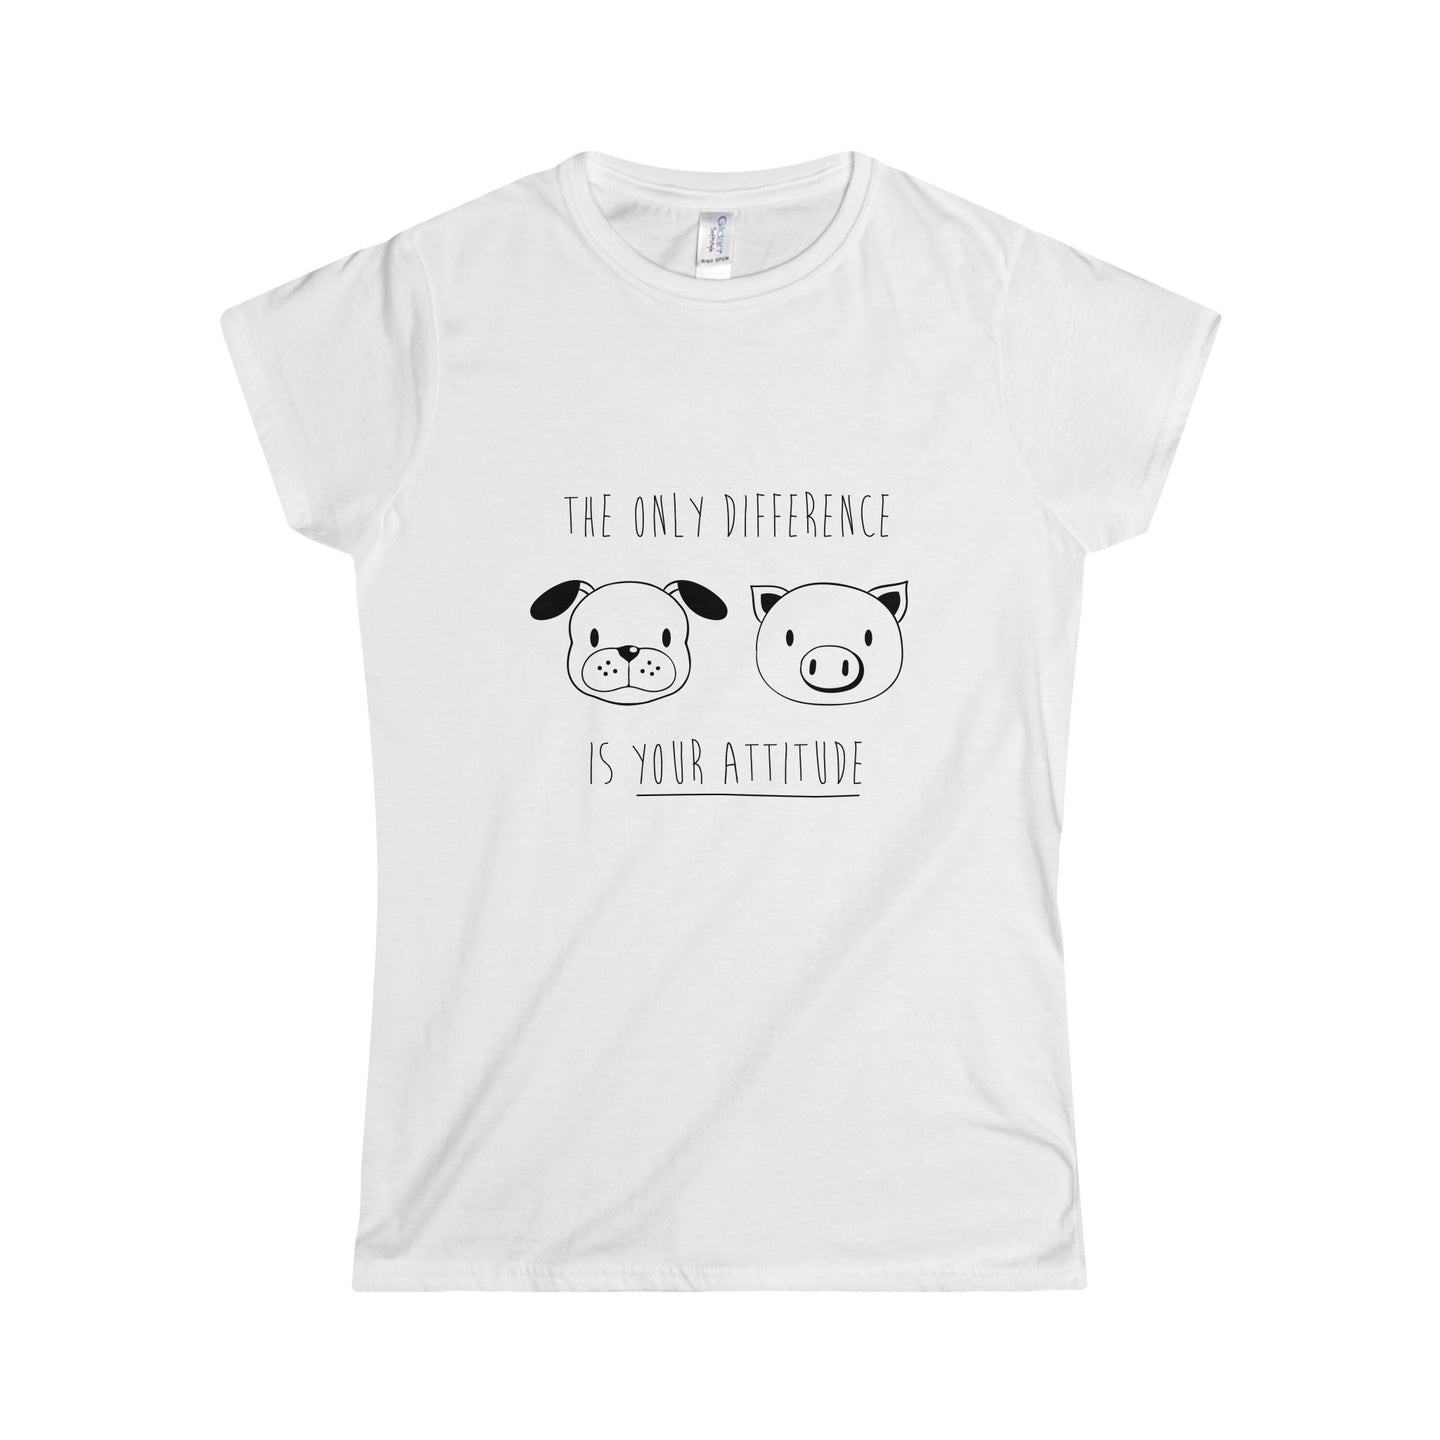 The Only Difference Is Your Attitude Vegan T-Shirt